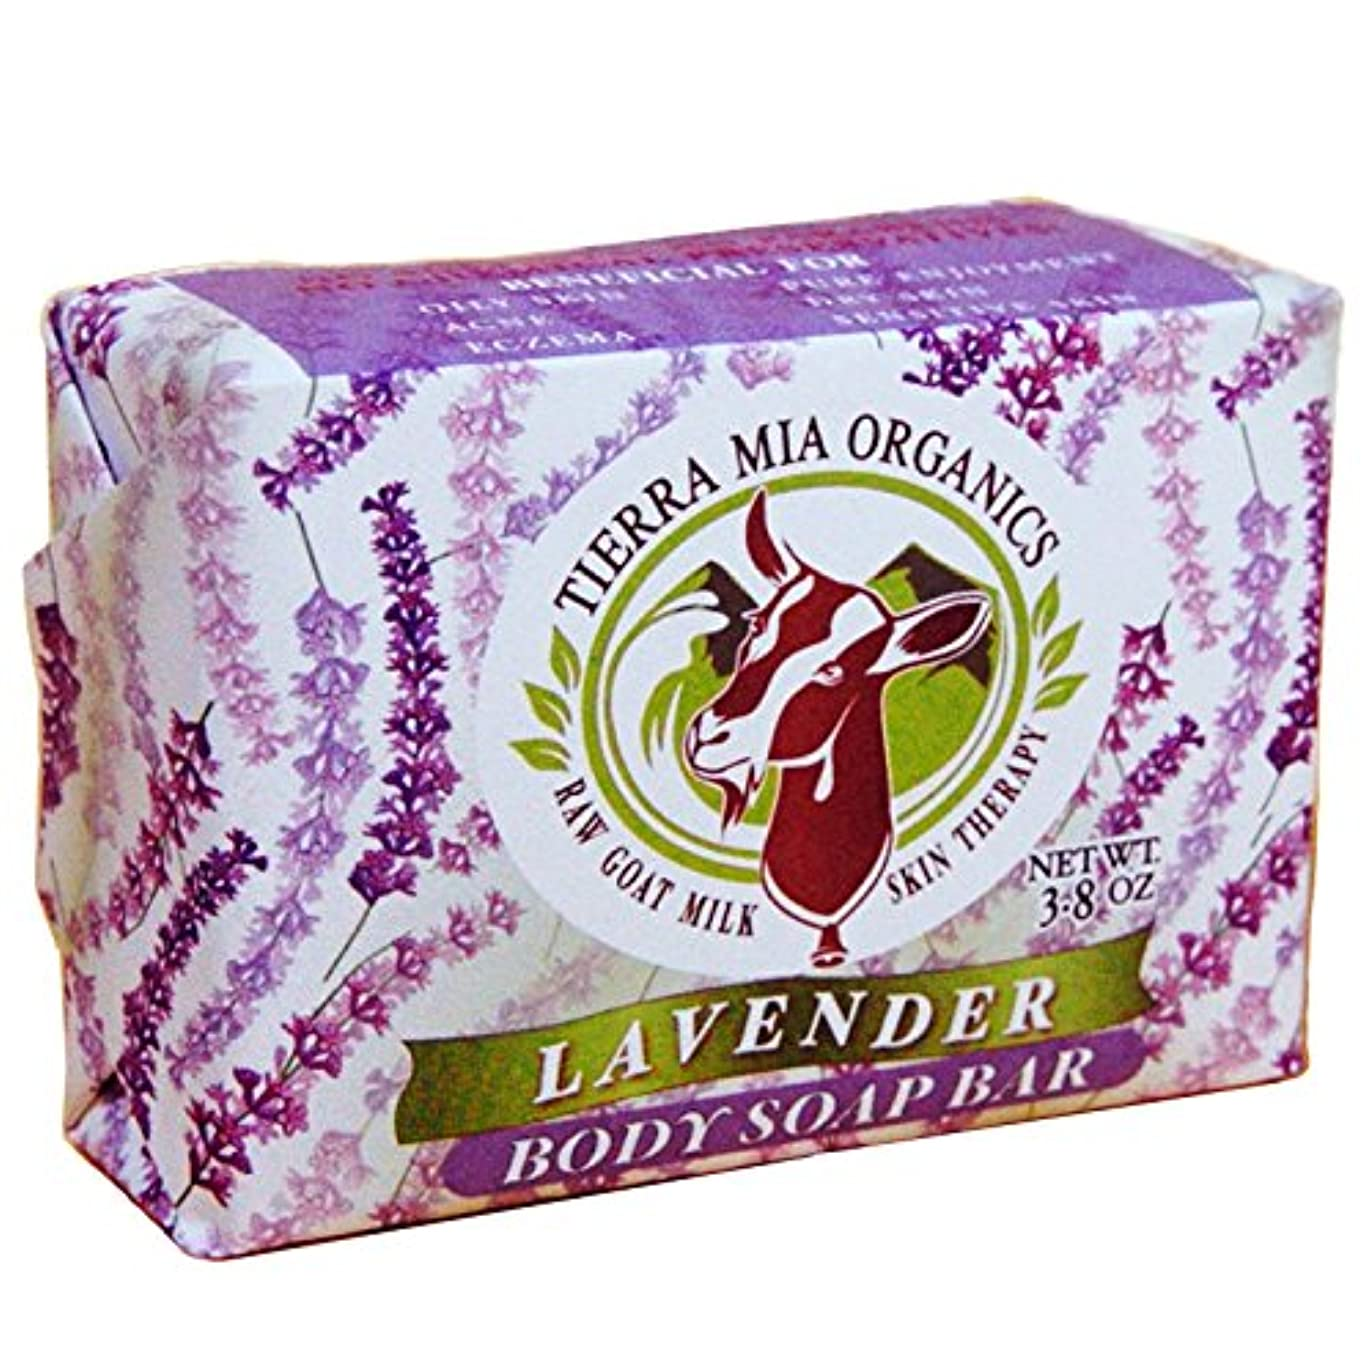 胚梨電話をかけるTierra Mia Organics, Raw Goat Milk Skin Therapy, Body Soap Bar, Lavender, 4.2 oz